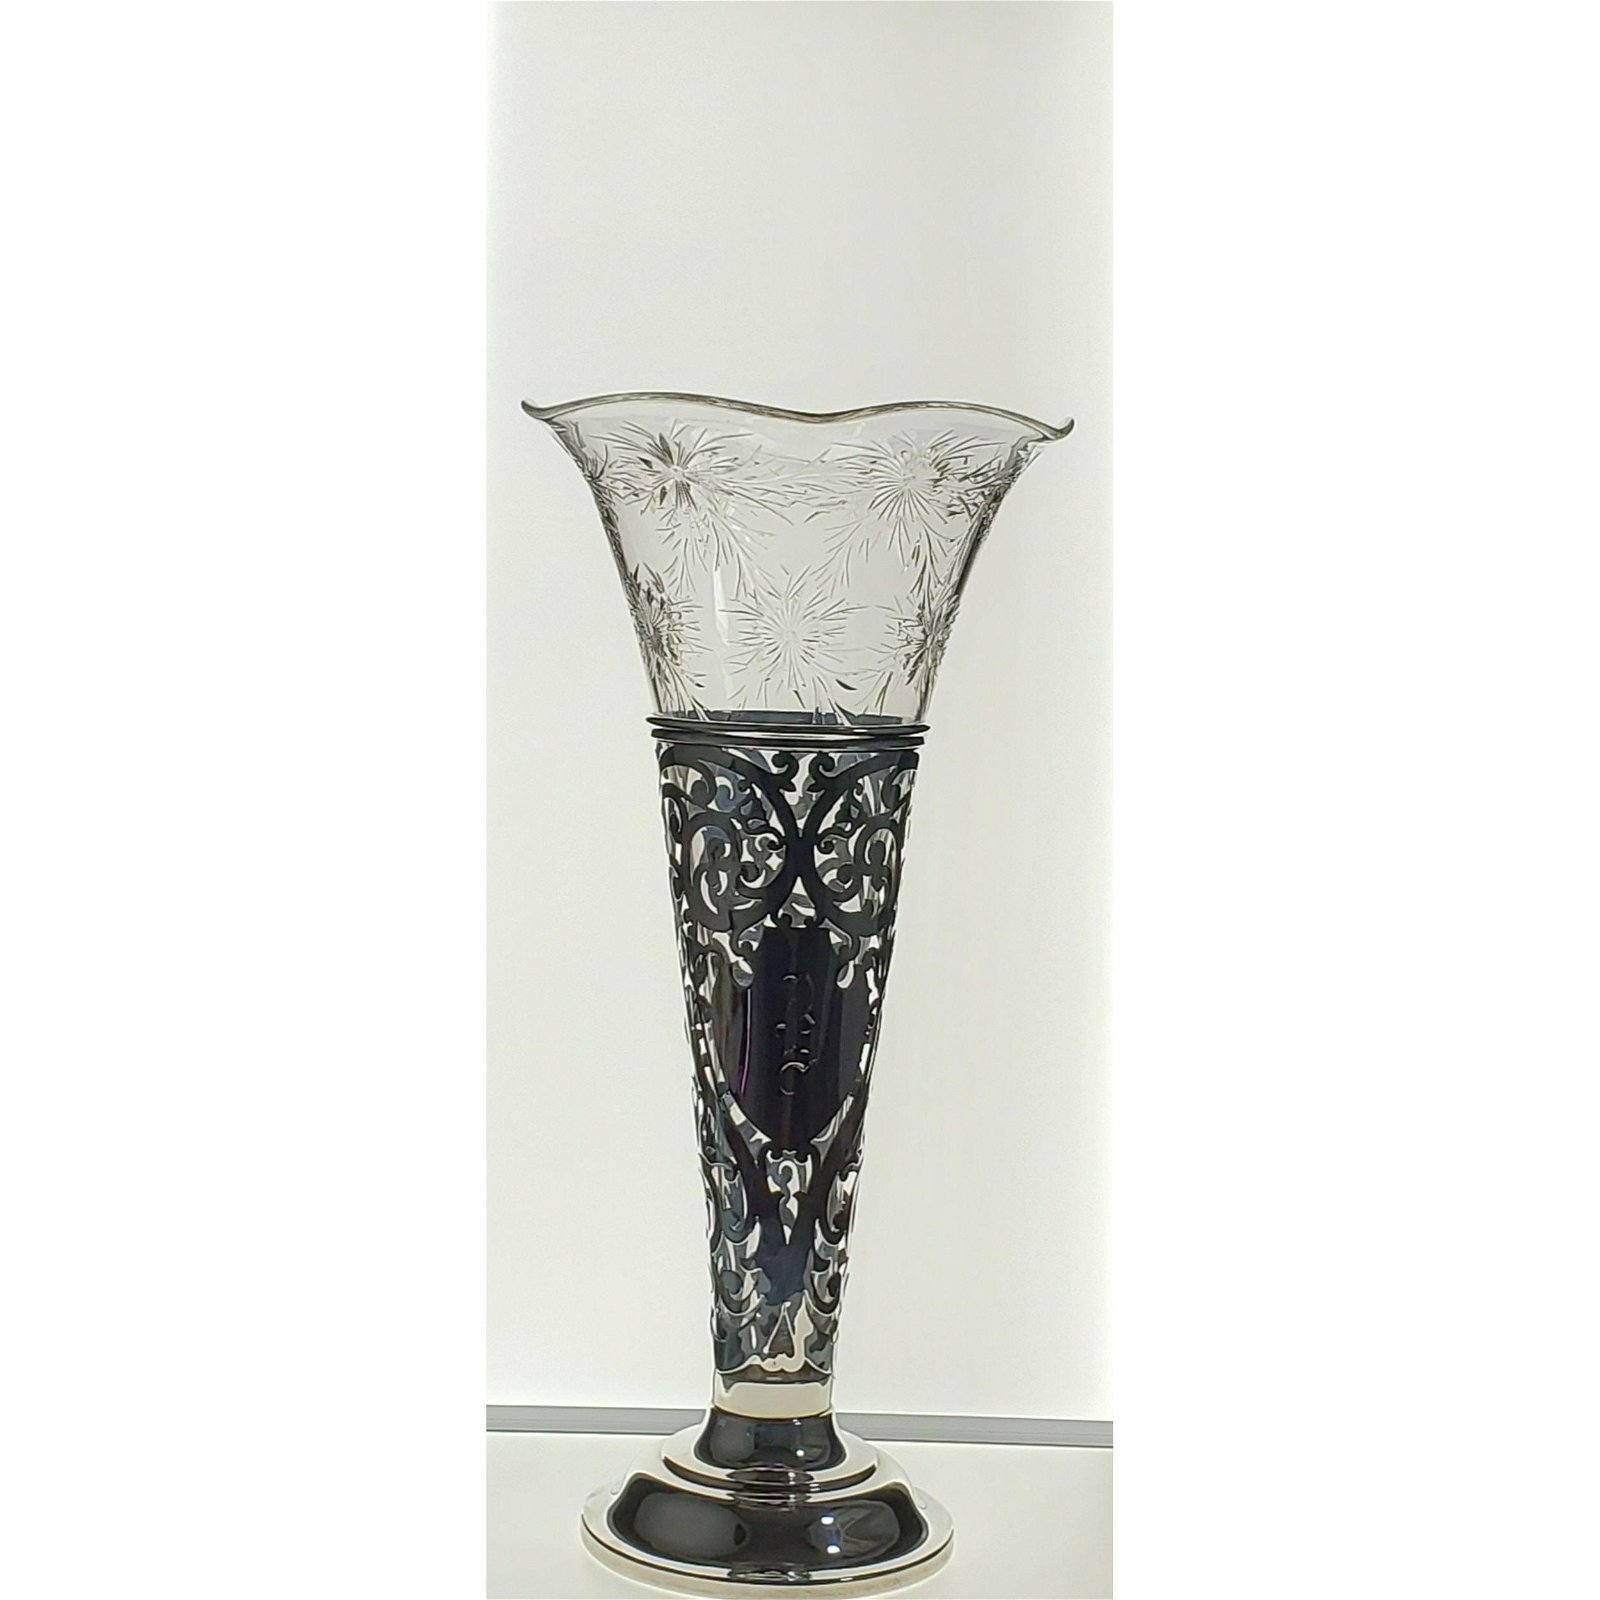 ABP Polished Engraved Vase In Sterling Silver Base.